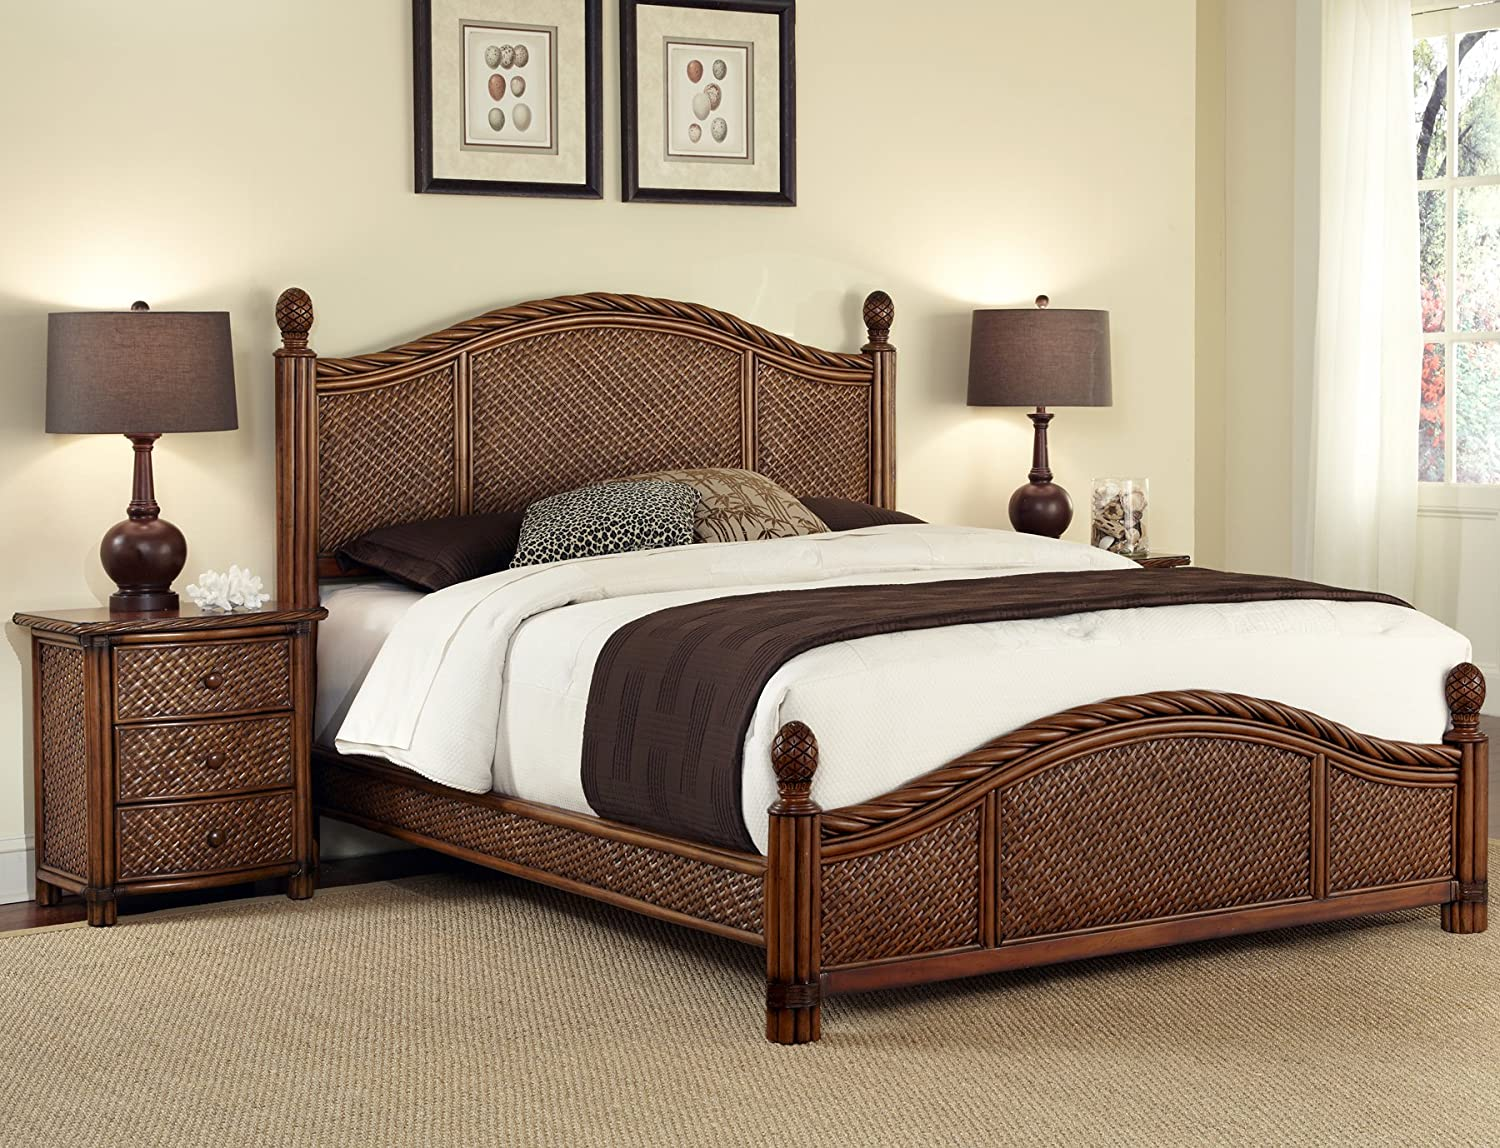 Amazon com  Home Styles Marco Island Queen Bed and Night Stand  Kitchen    Dining. Amazon com  Home Styles Marco Island Queen Bed and Night Stand